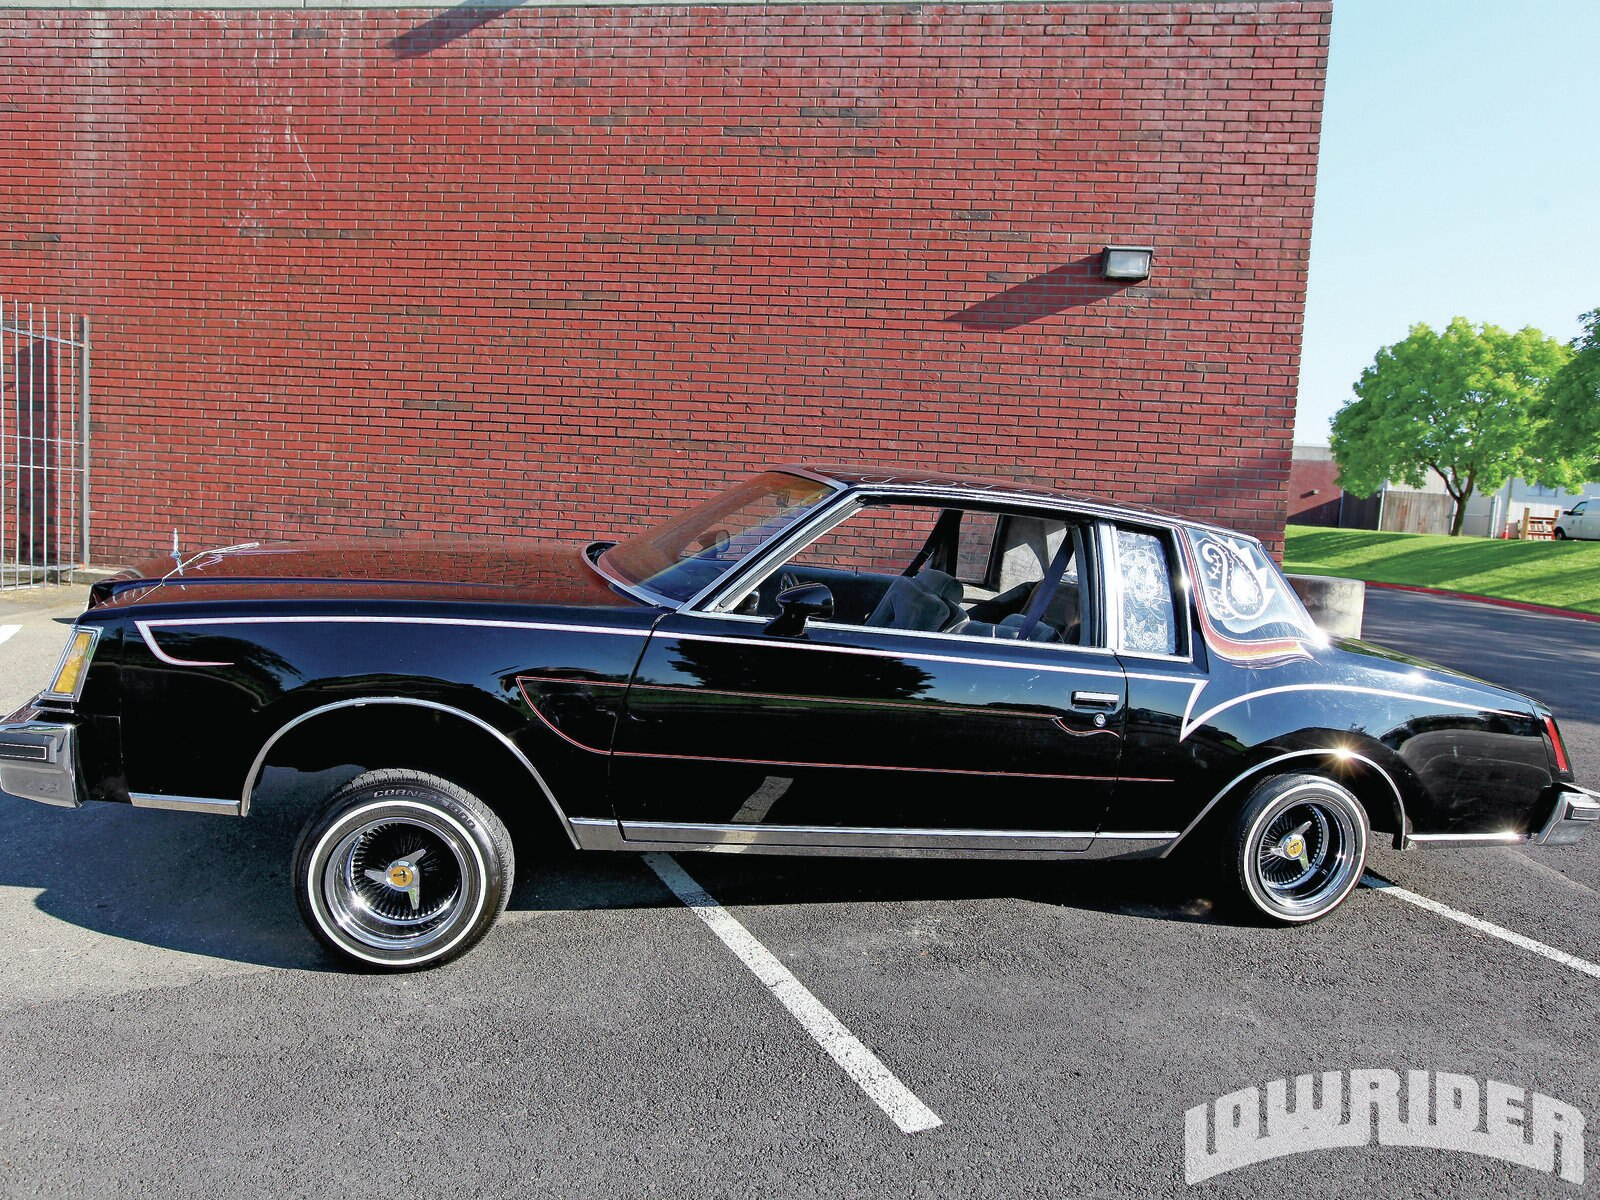 1110-lrmp-09-o-lowrider-on-the-blvd-1979-buick-regal2